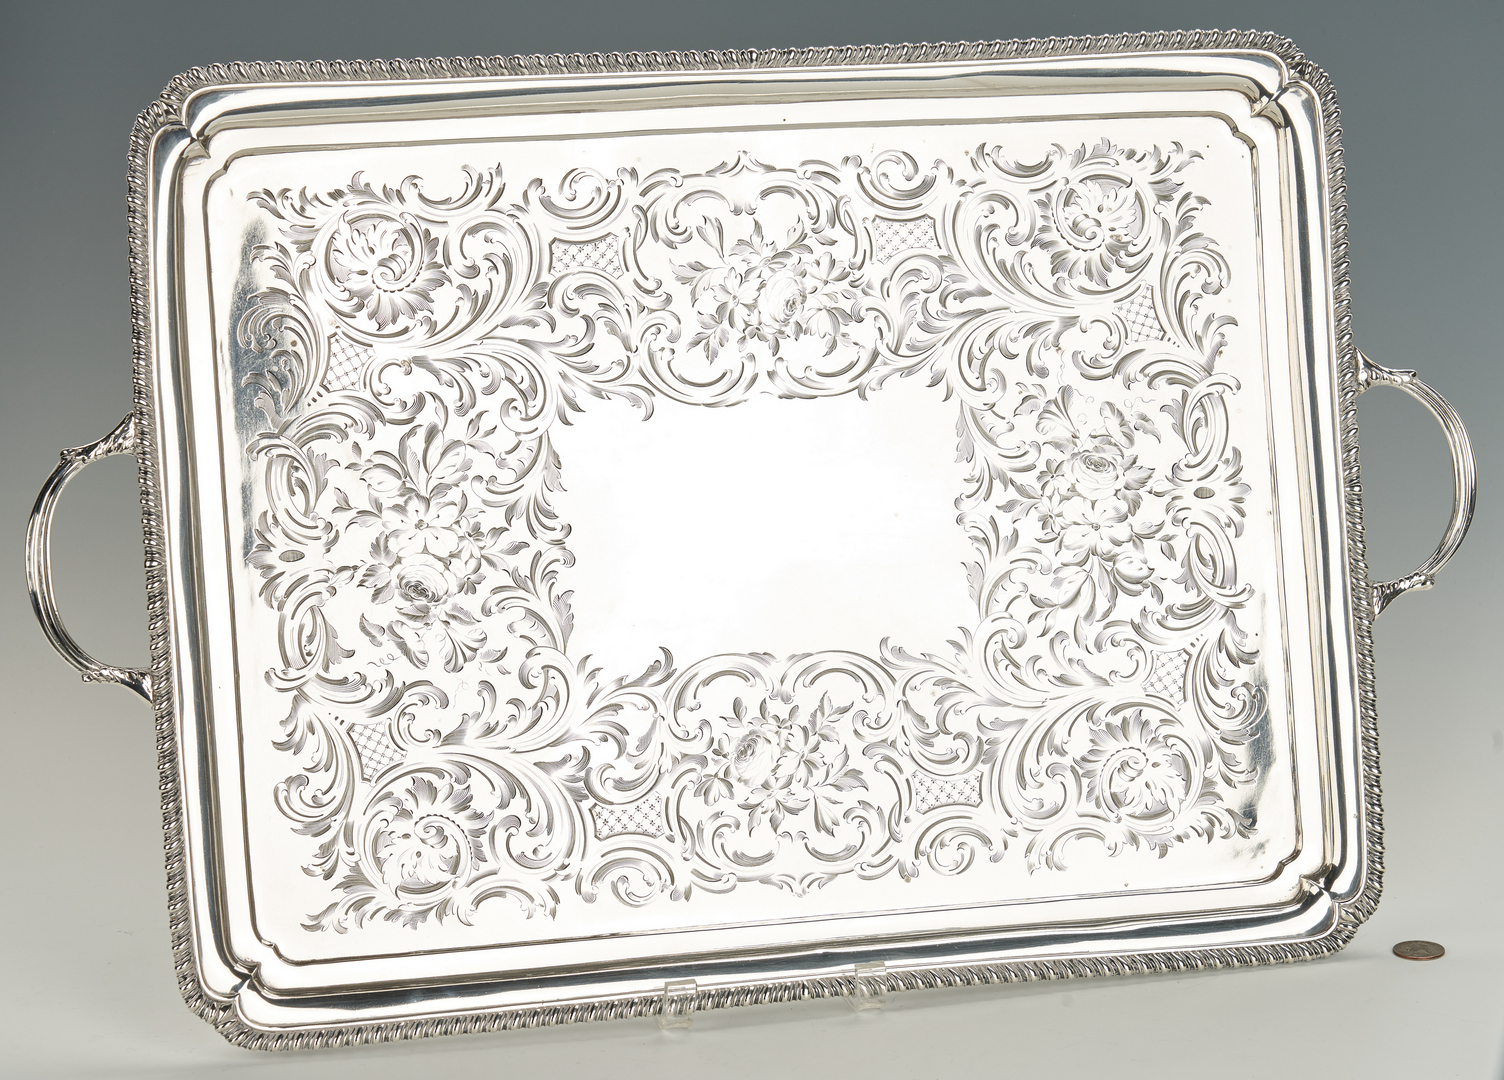 Lot 54: George III Sterling Silver Tray, 1762, Daniel Smith & Robert Sharp